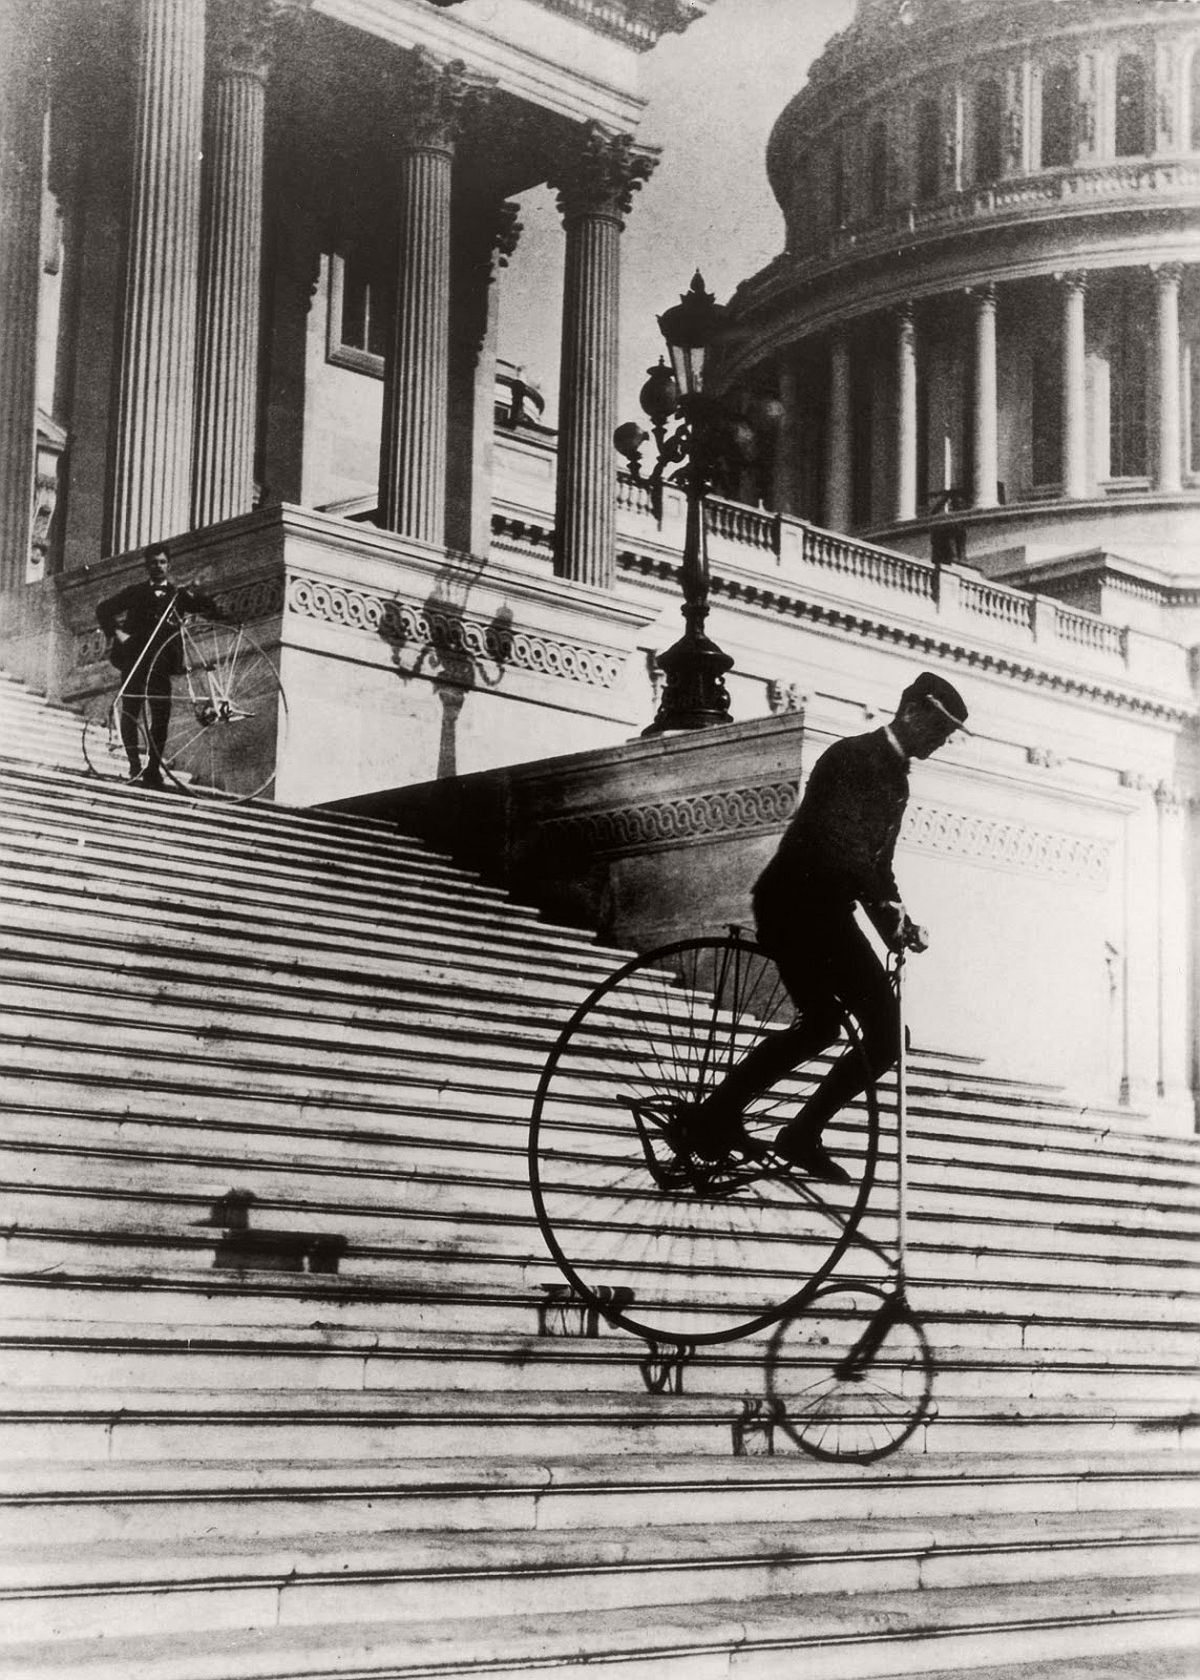 Men ride penny-farthings down the steps of the United States capitol building, 1895. (Getty Images)